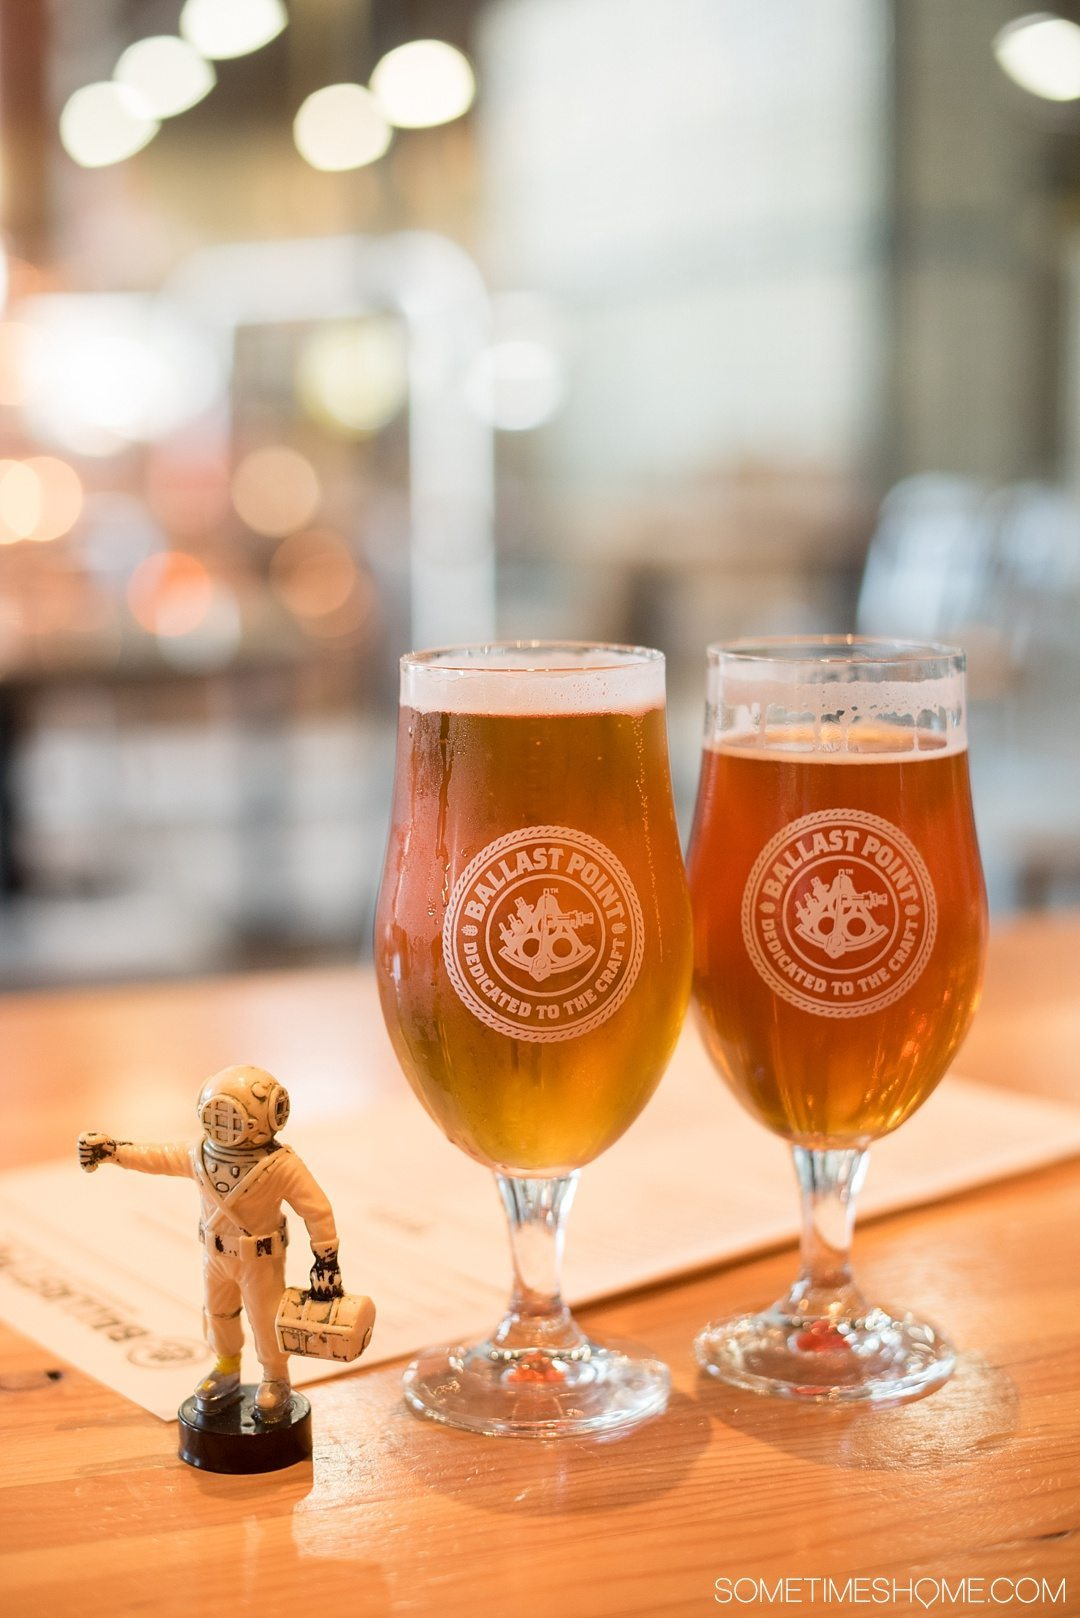 Self Guided Day Tour of the Best Breweries in San Diego on Sometimes Home travel blog. Photos of Ballast Point brewery and tasting room.